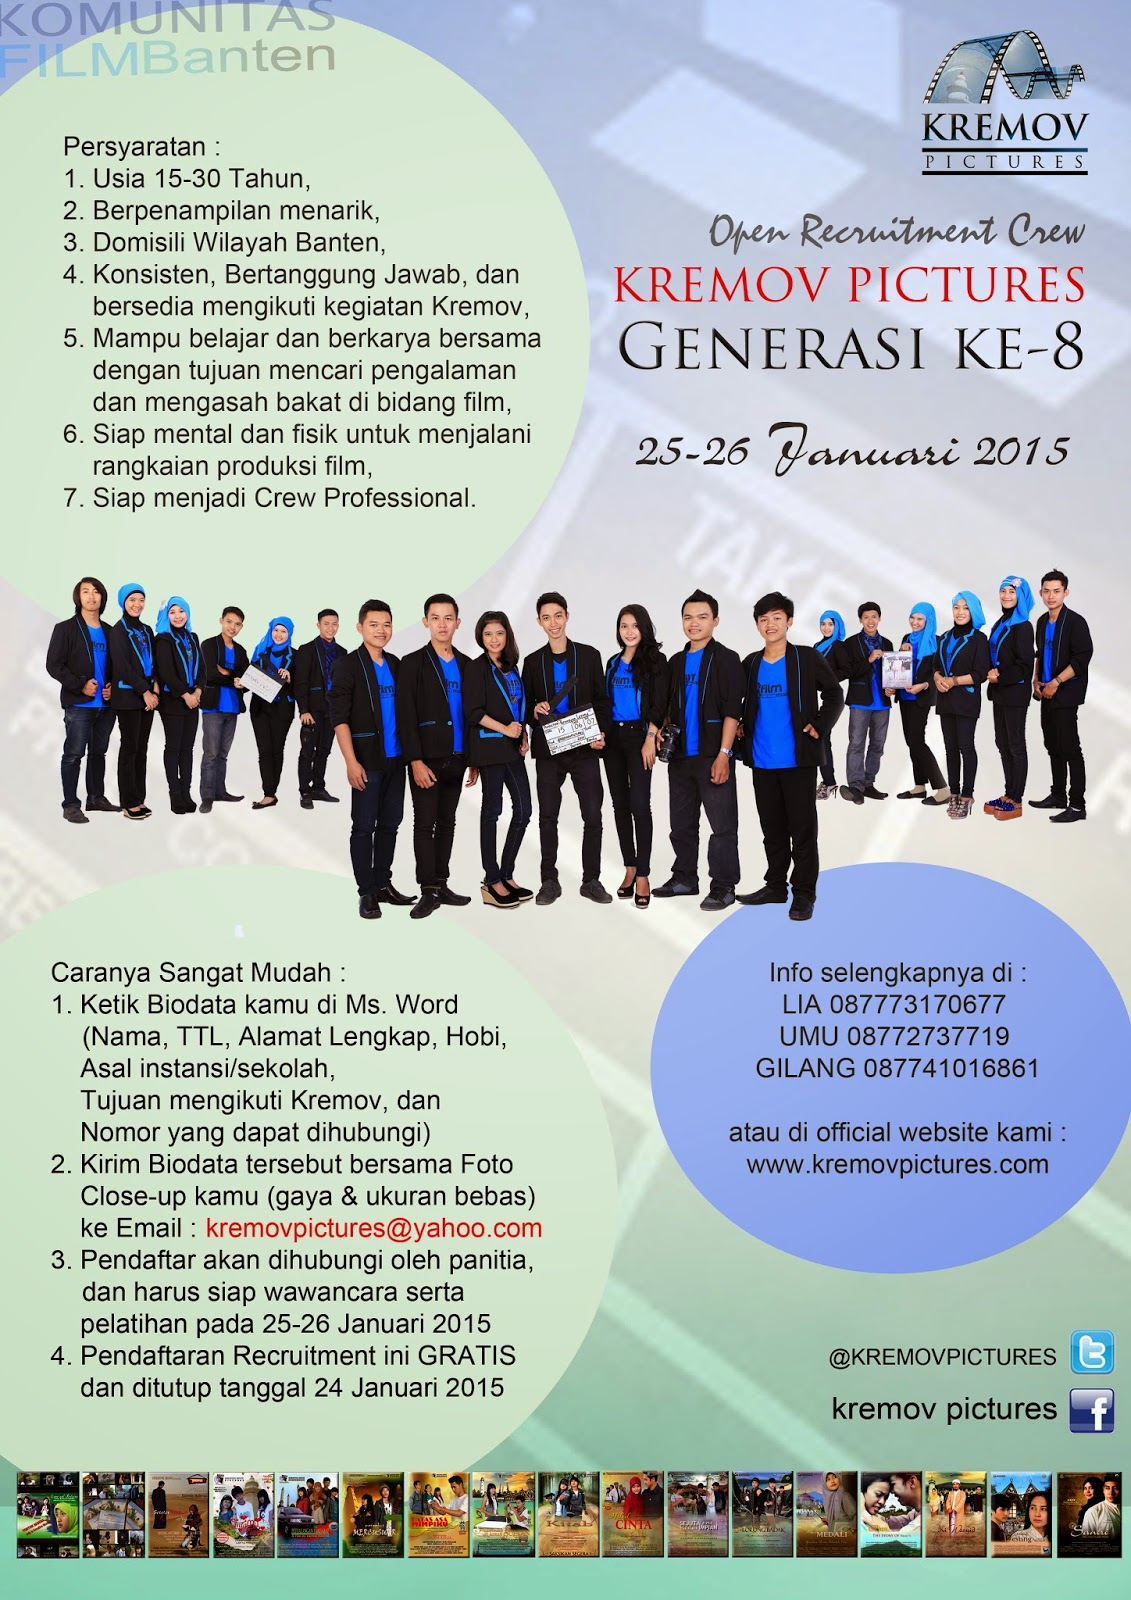 Kremov Buka Recruitment Crew Generasi Ke-8 !